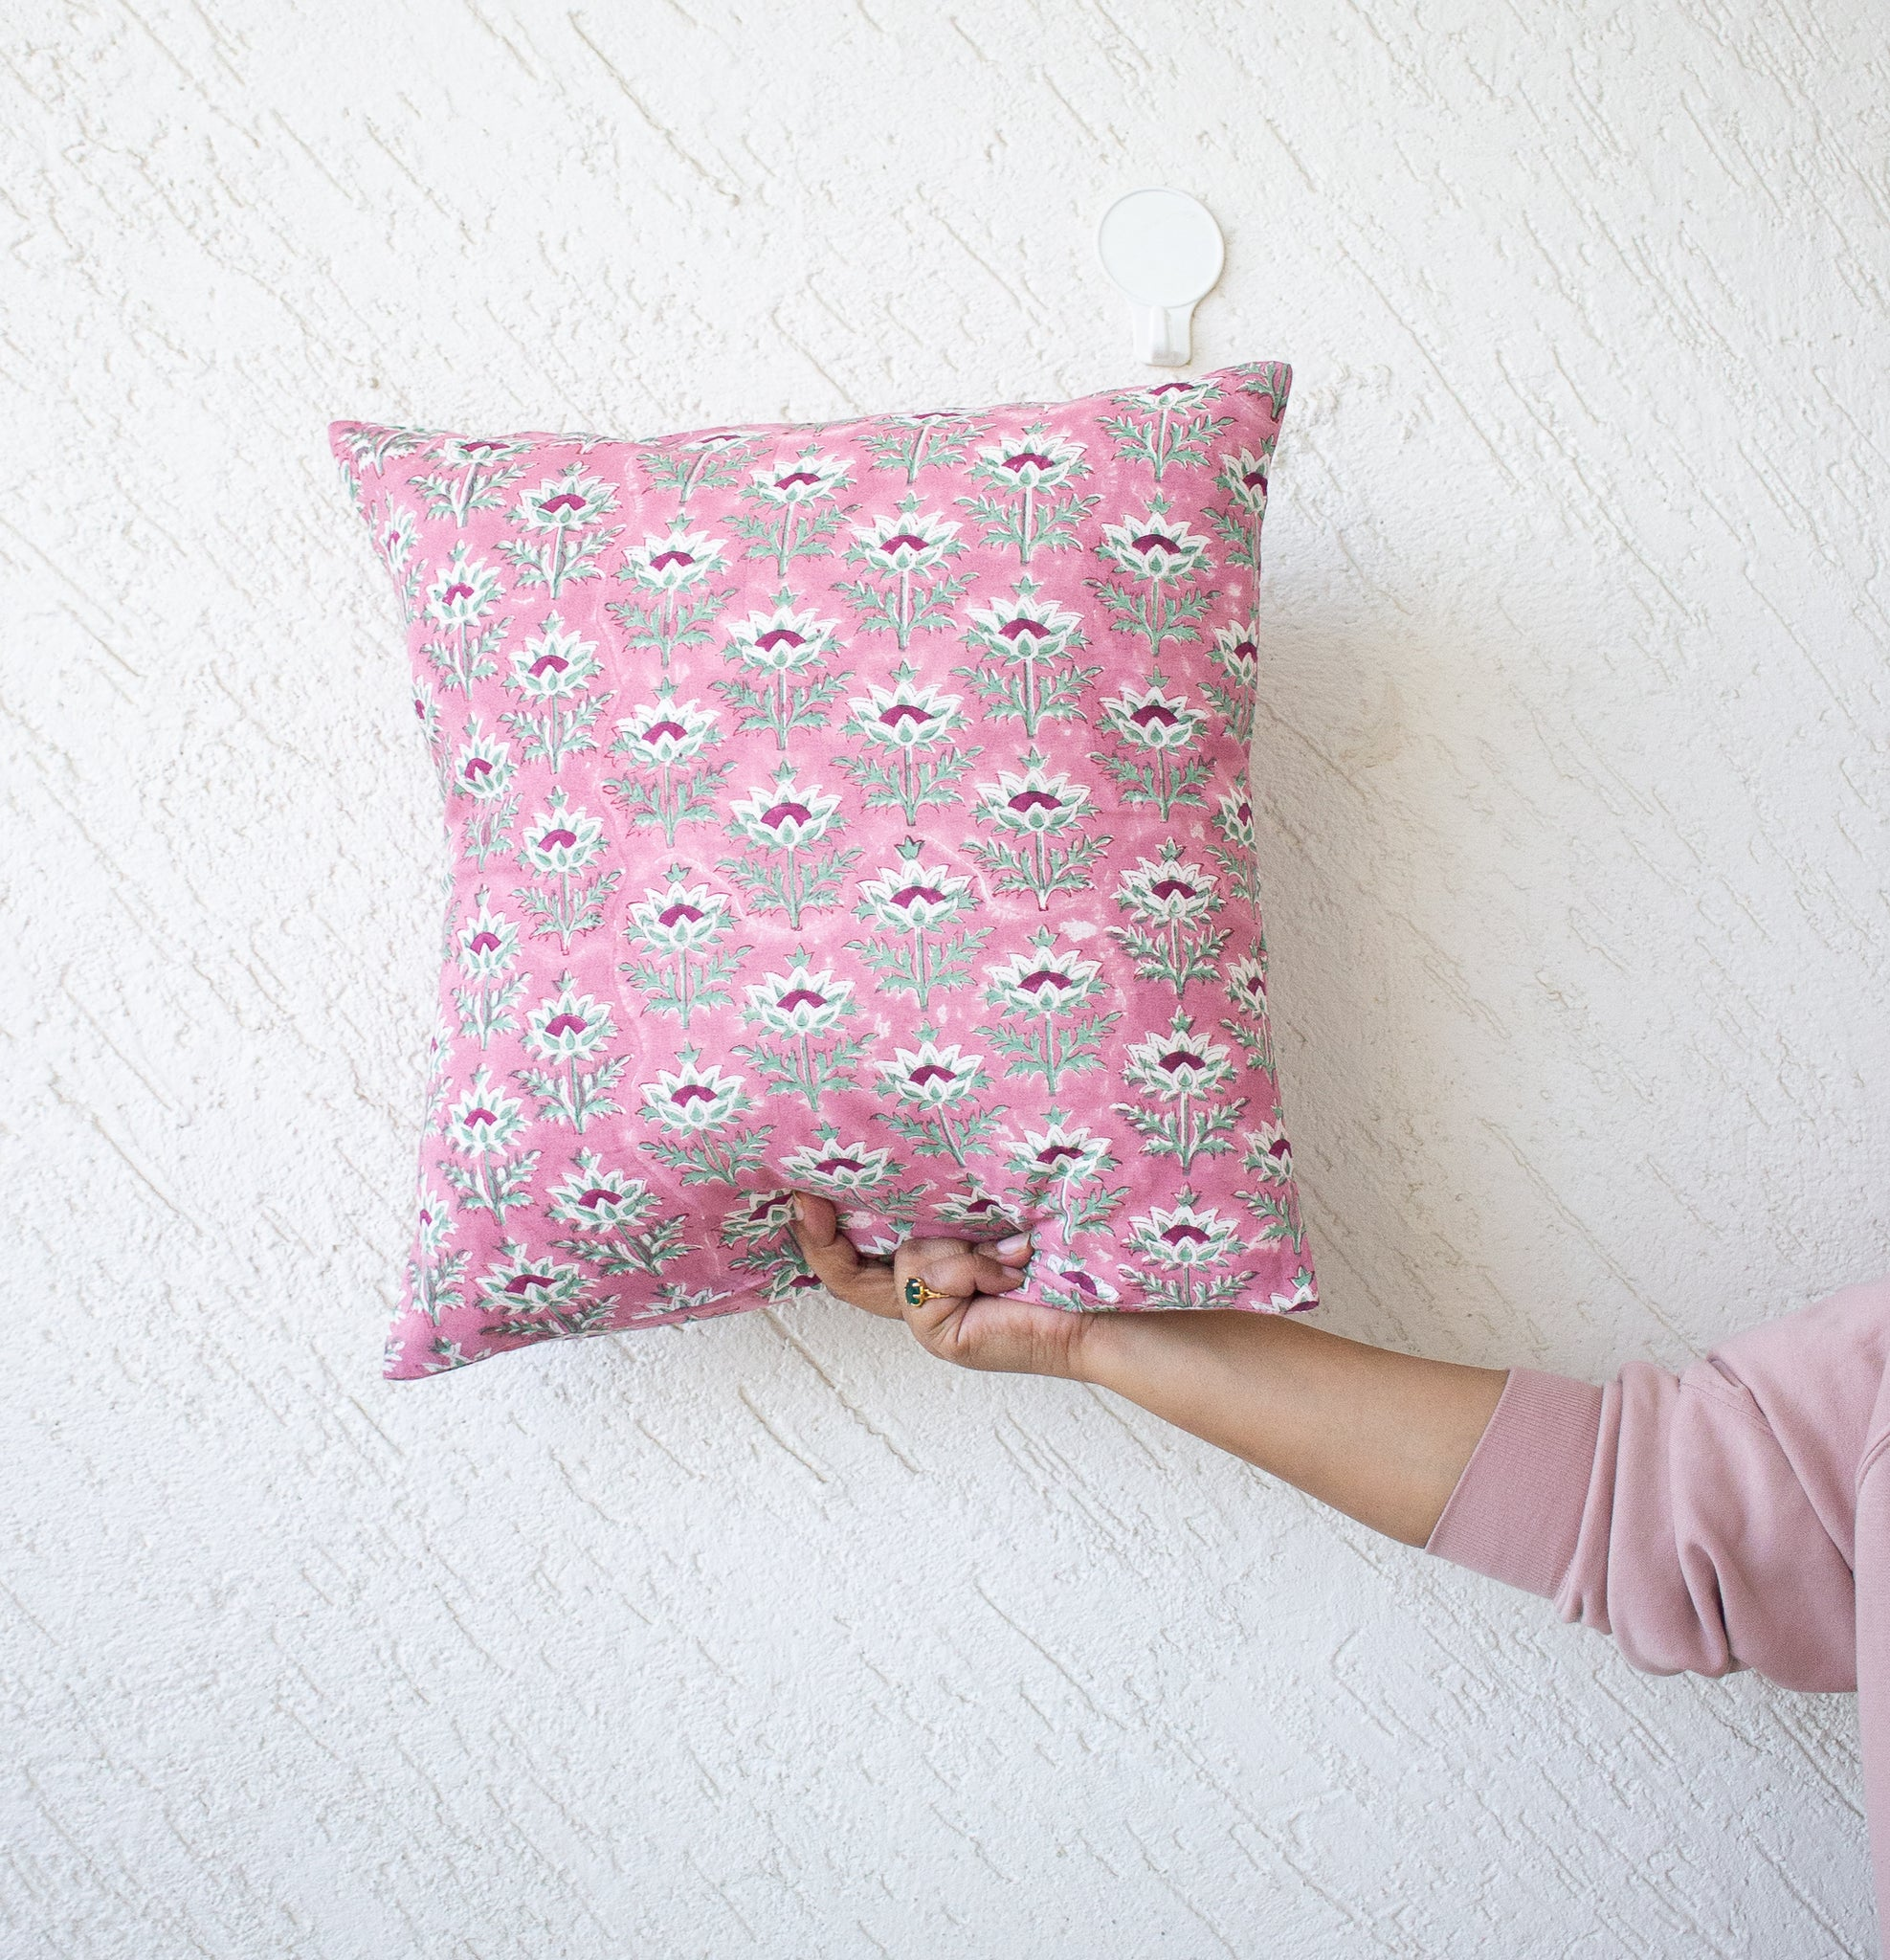 Block print decorative cushion covers - 16x16 inches - Pink floral cushion cover